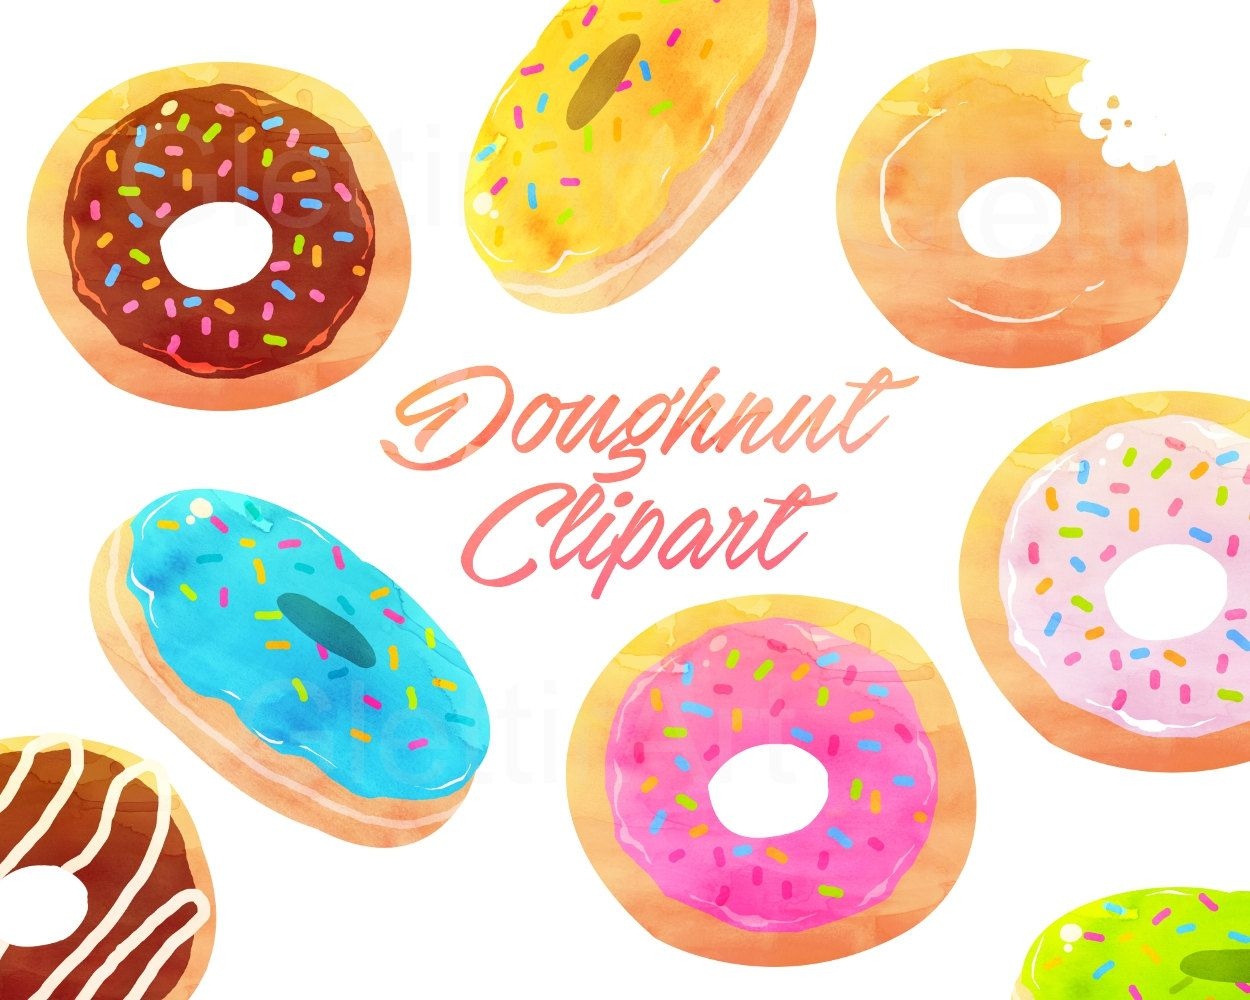 donut clipart doughnut clipart dessert clipart for personal and commercial use instant download scrapbooking planner stickers by glettirart on etsy [ 1250 x 1000 Pixel ]